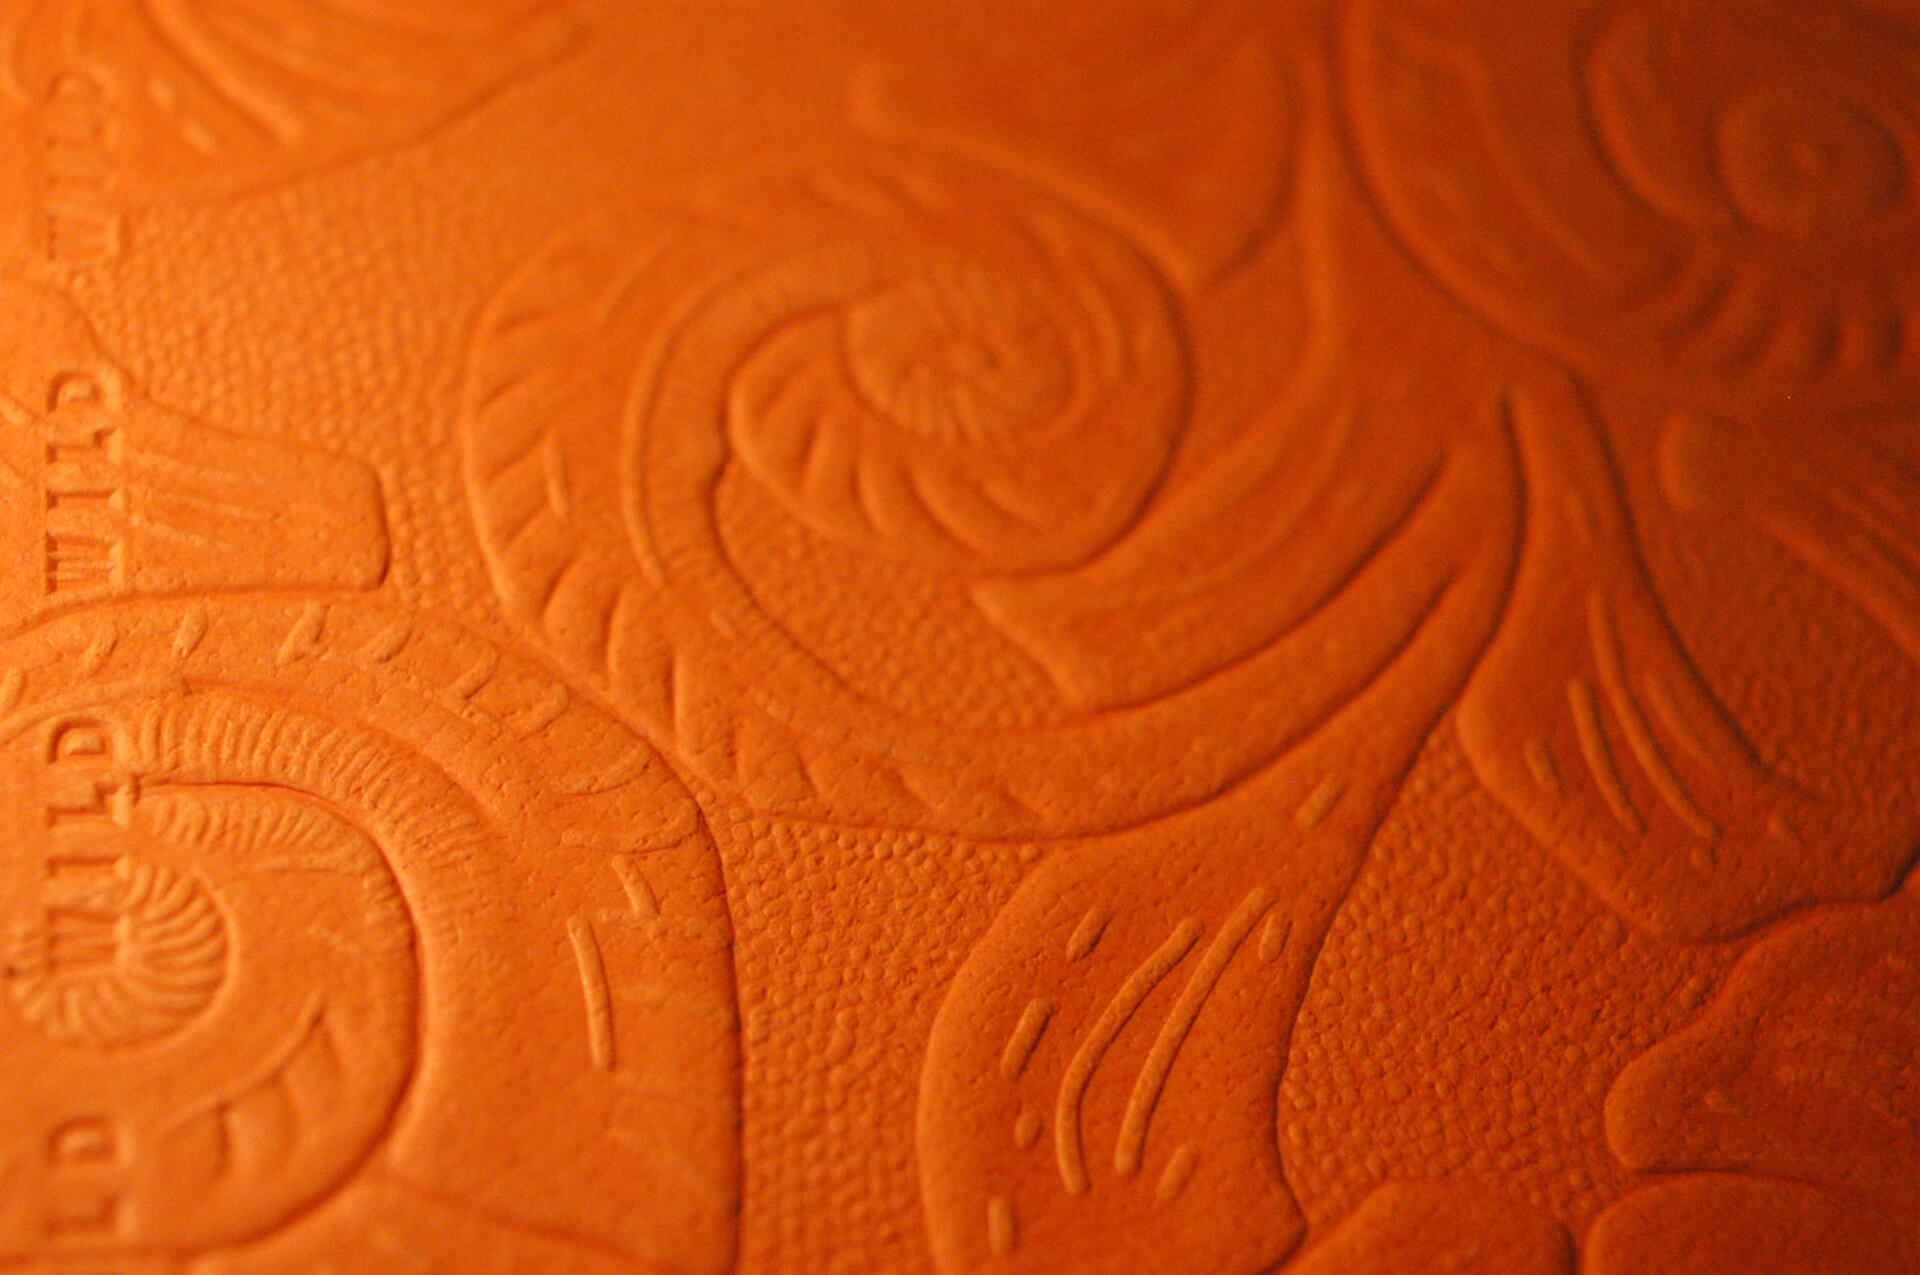 Relief blind embossing for a paper samples book